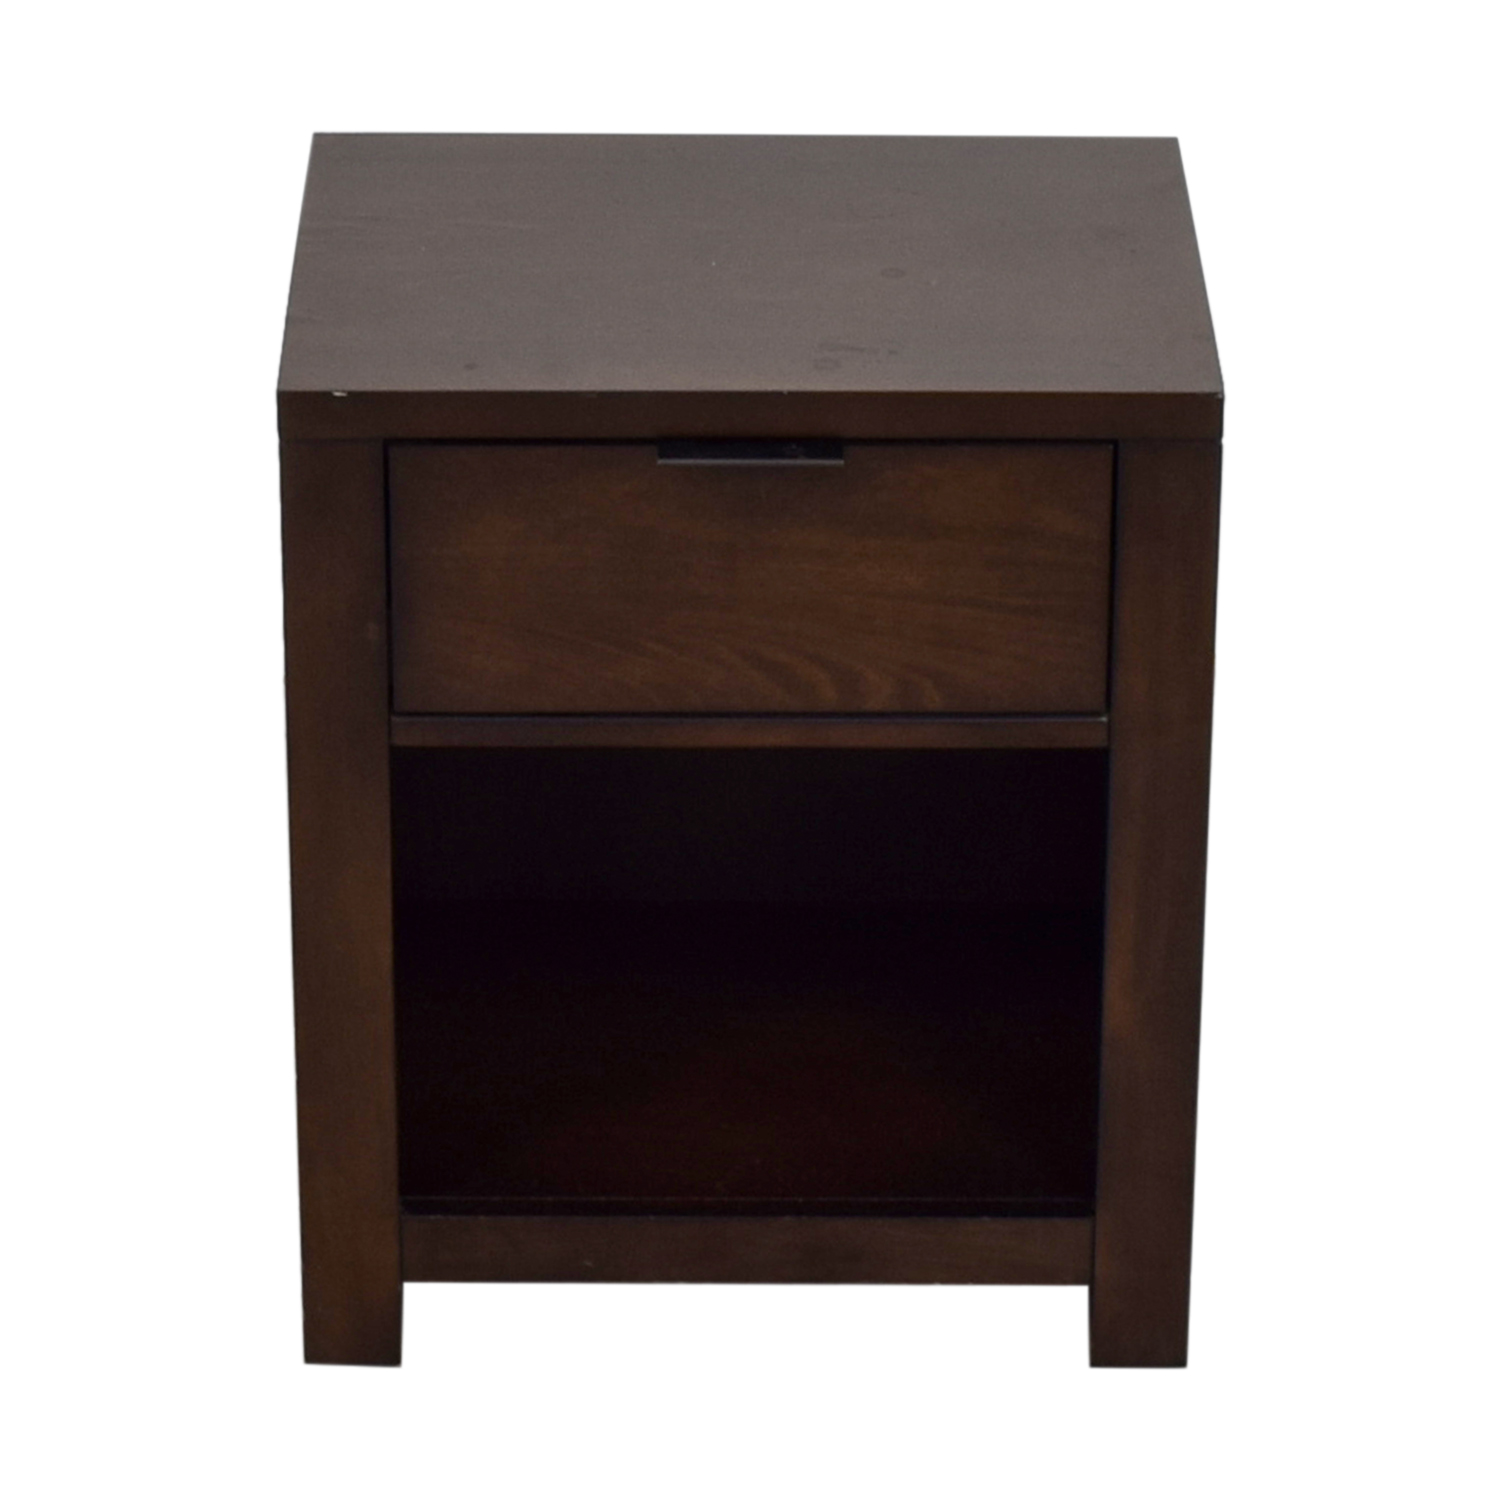 Macy's Macy's Tribeca Single Drawer Nightstand for sale